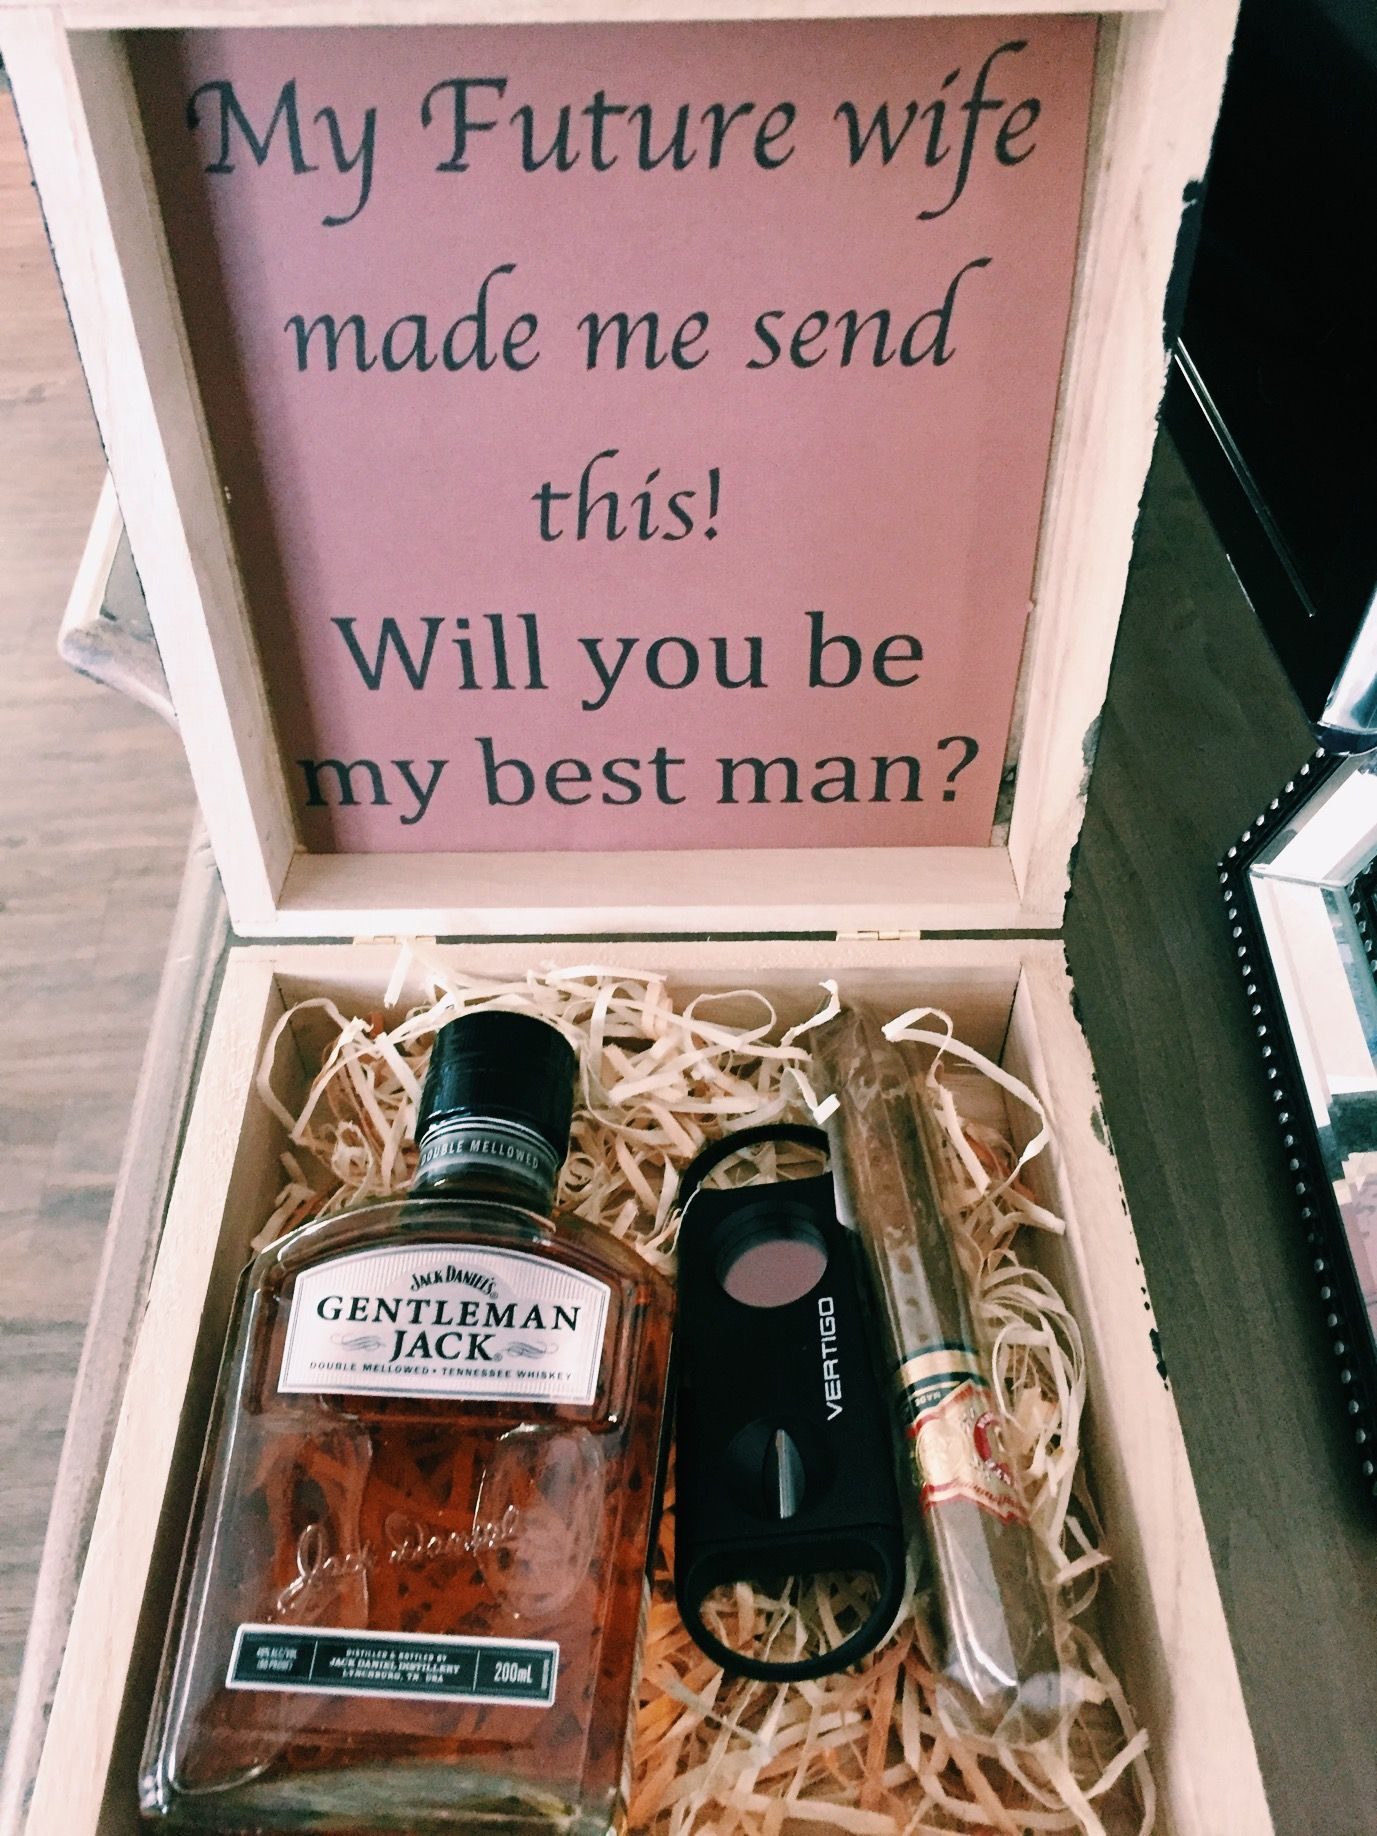 Stunning 30 Manly Groomsmen Gifts Ideas For Your Buddies | All About ...